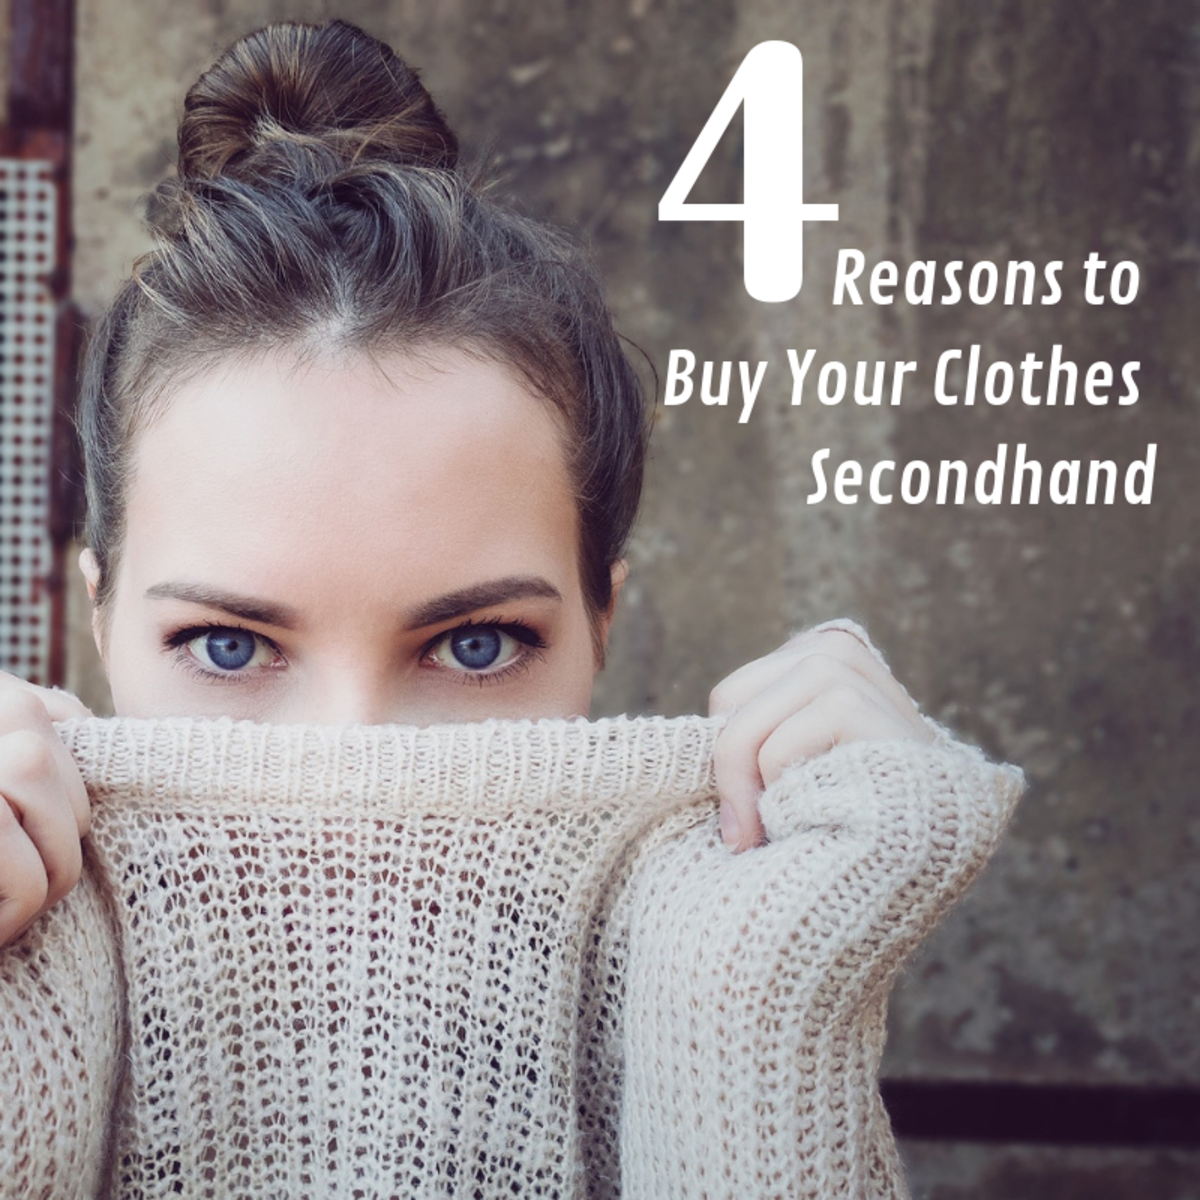 4 Benefits of Buying Secondhand Clothing